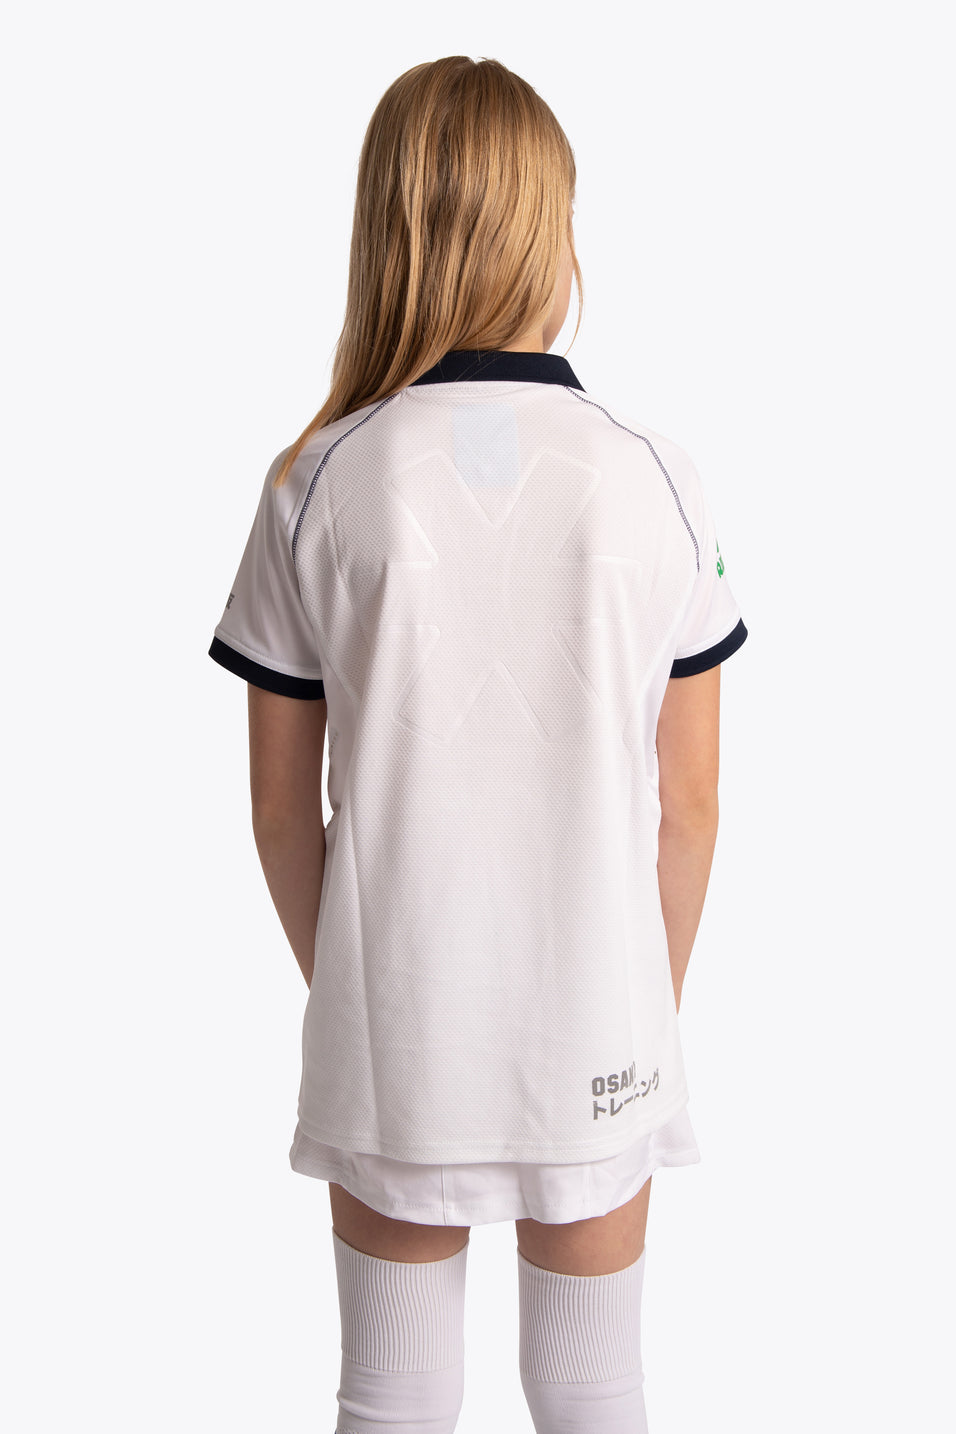 BHV Push Deshi Polo Jersey - White